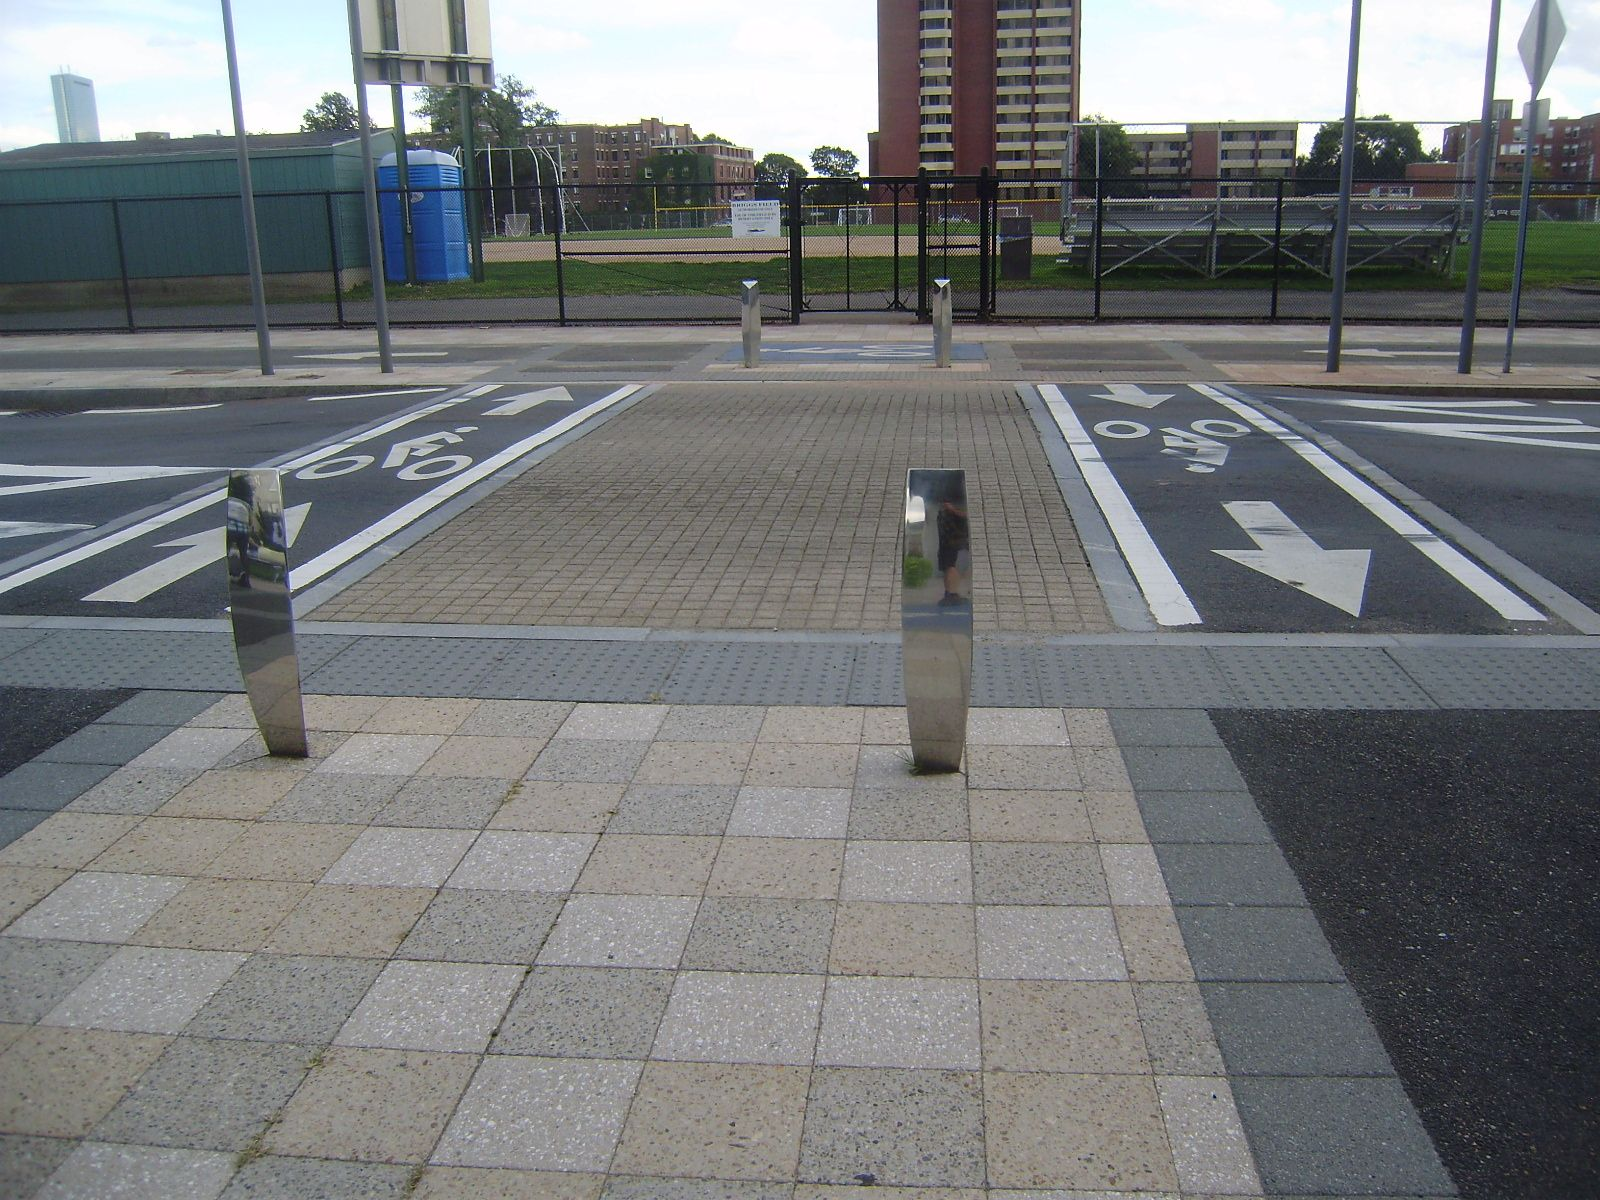 Image Result For Raised Pedestrian Crossing Design Crossings Pinterest Pedestrian Crossing